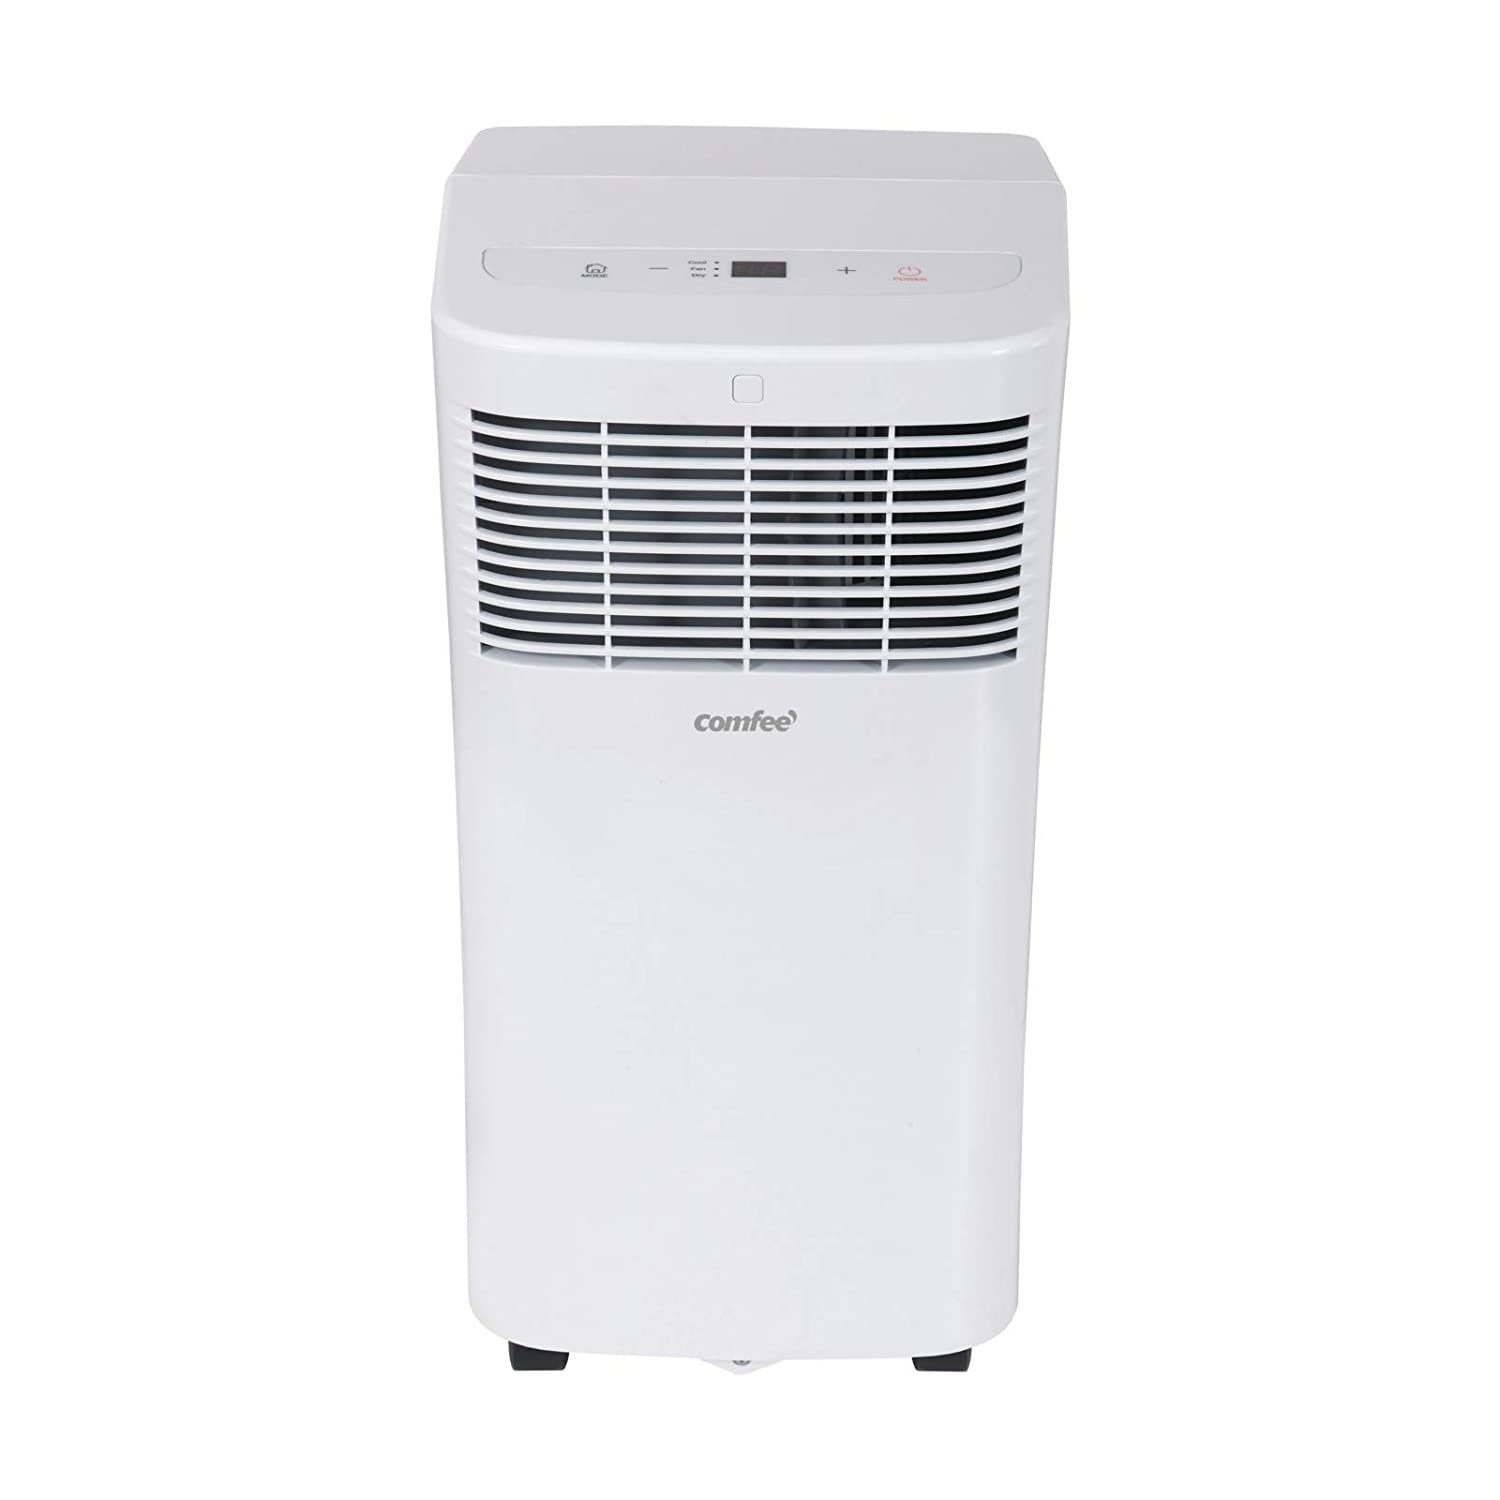 Comfee MPPHA-05CRN7 Climatiseur mobile 680 W 230 V Blanc 32,9 x 31,8 x 61,5 cm